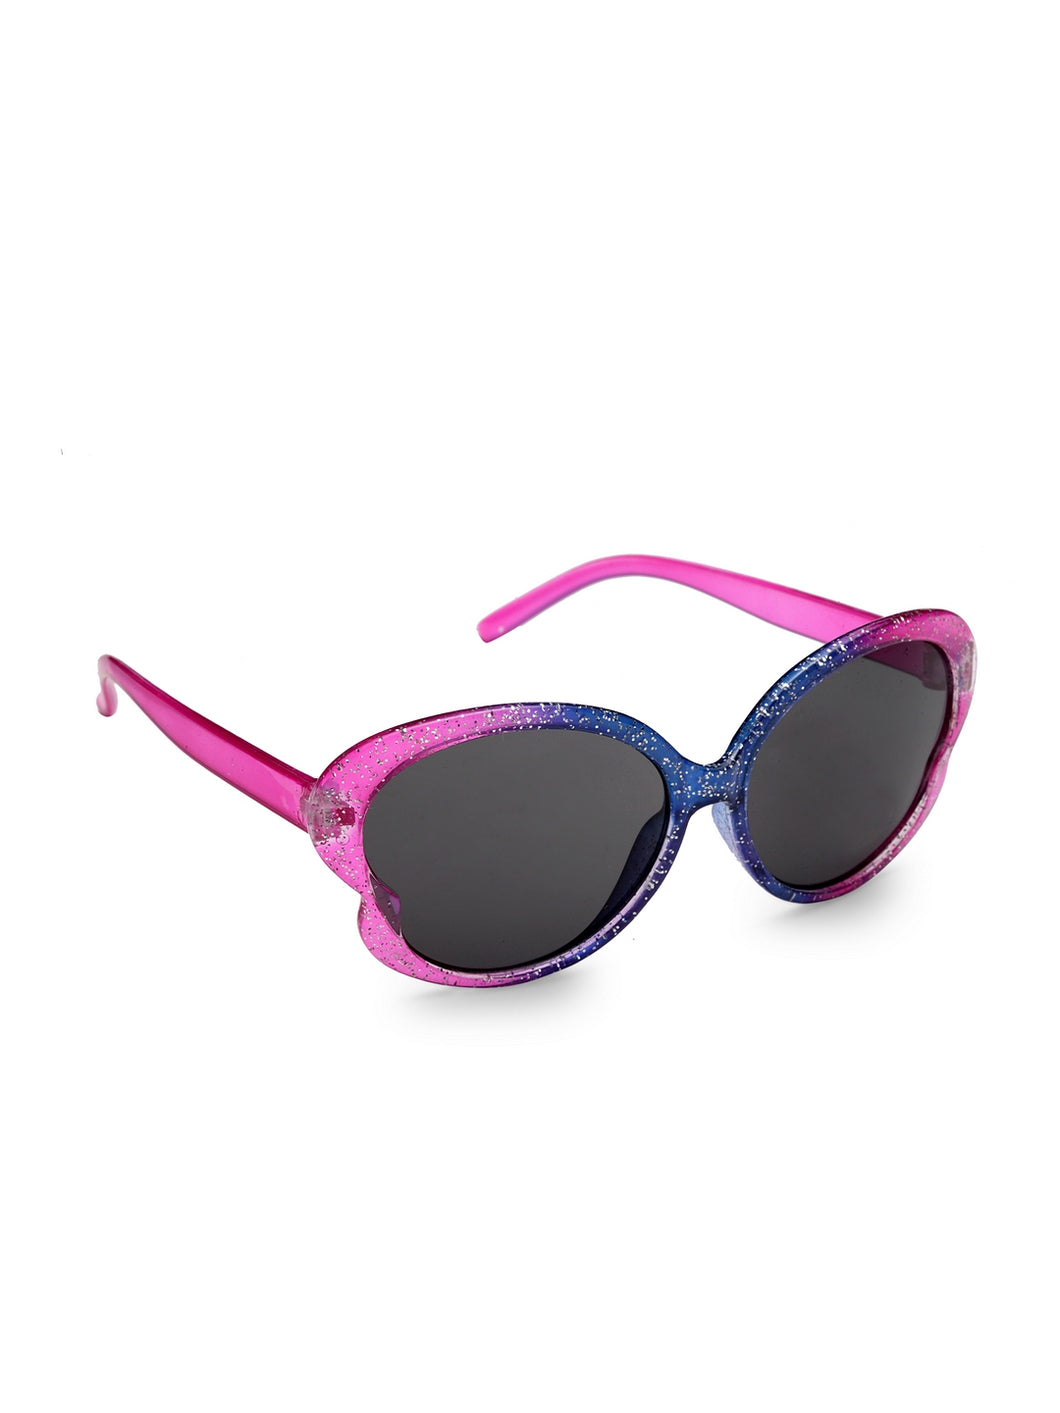 Stol'n Premium Attractive Fashionable UV-Protected Round Sunglasses - Multicolor